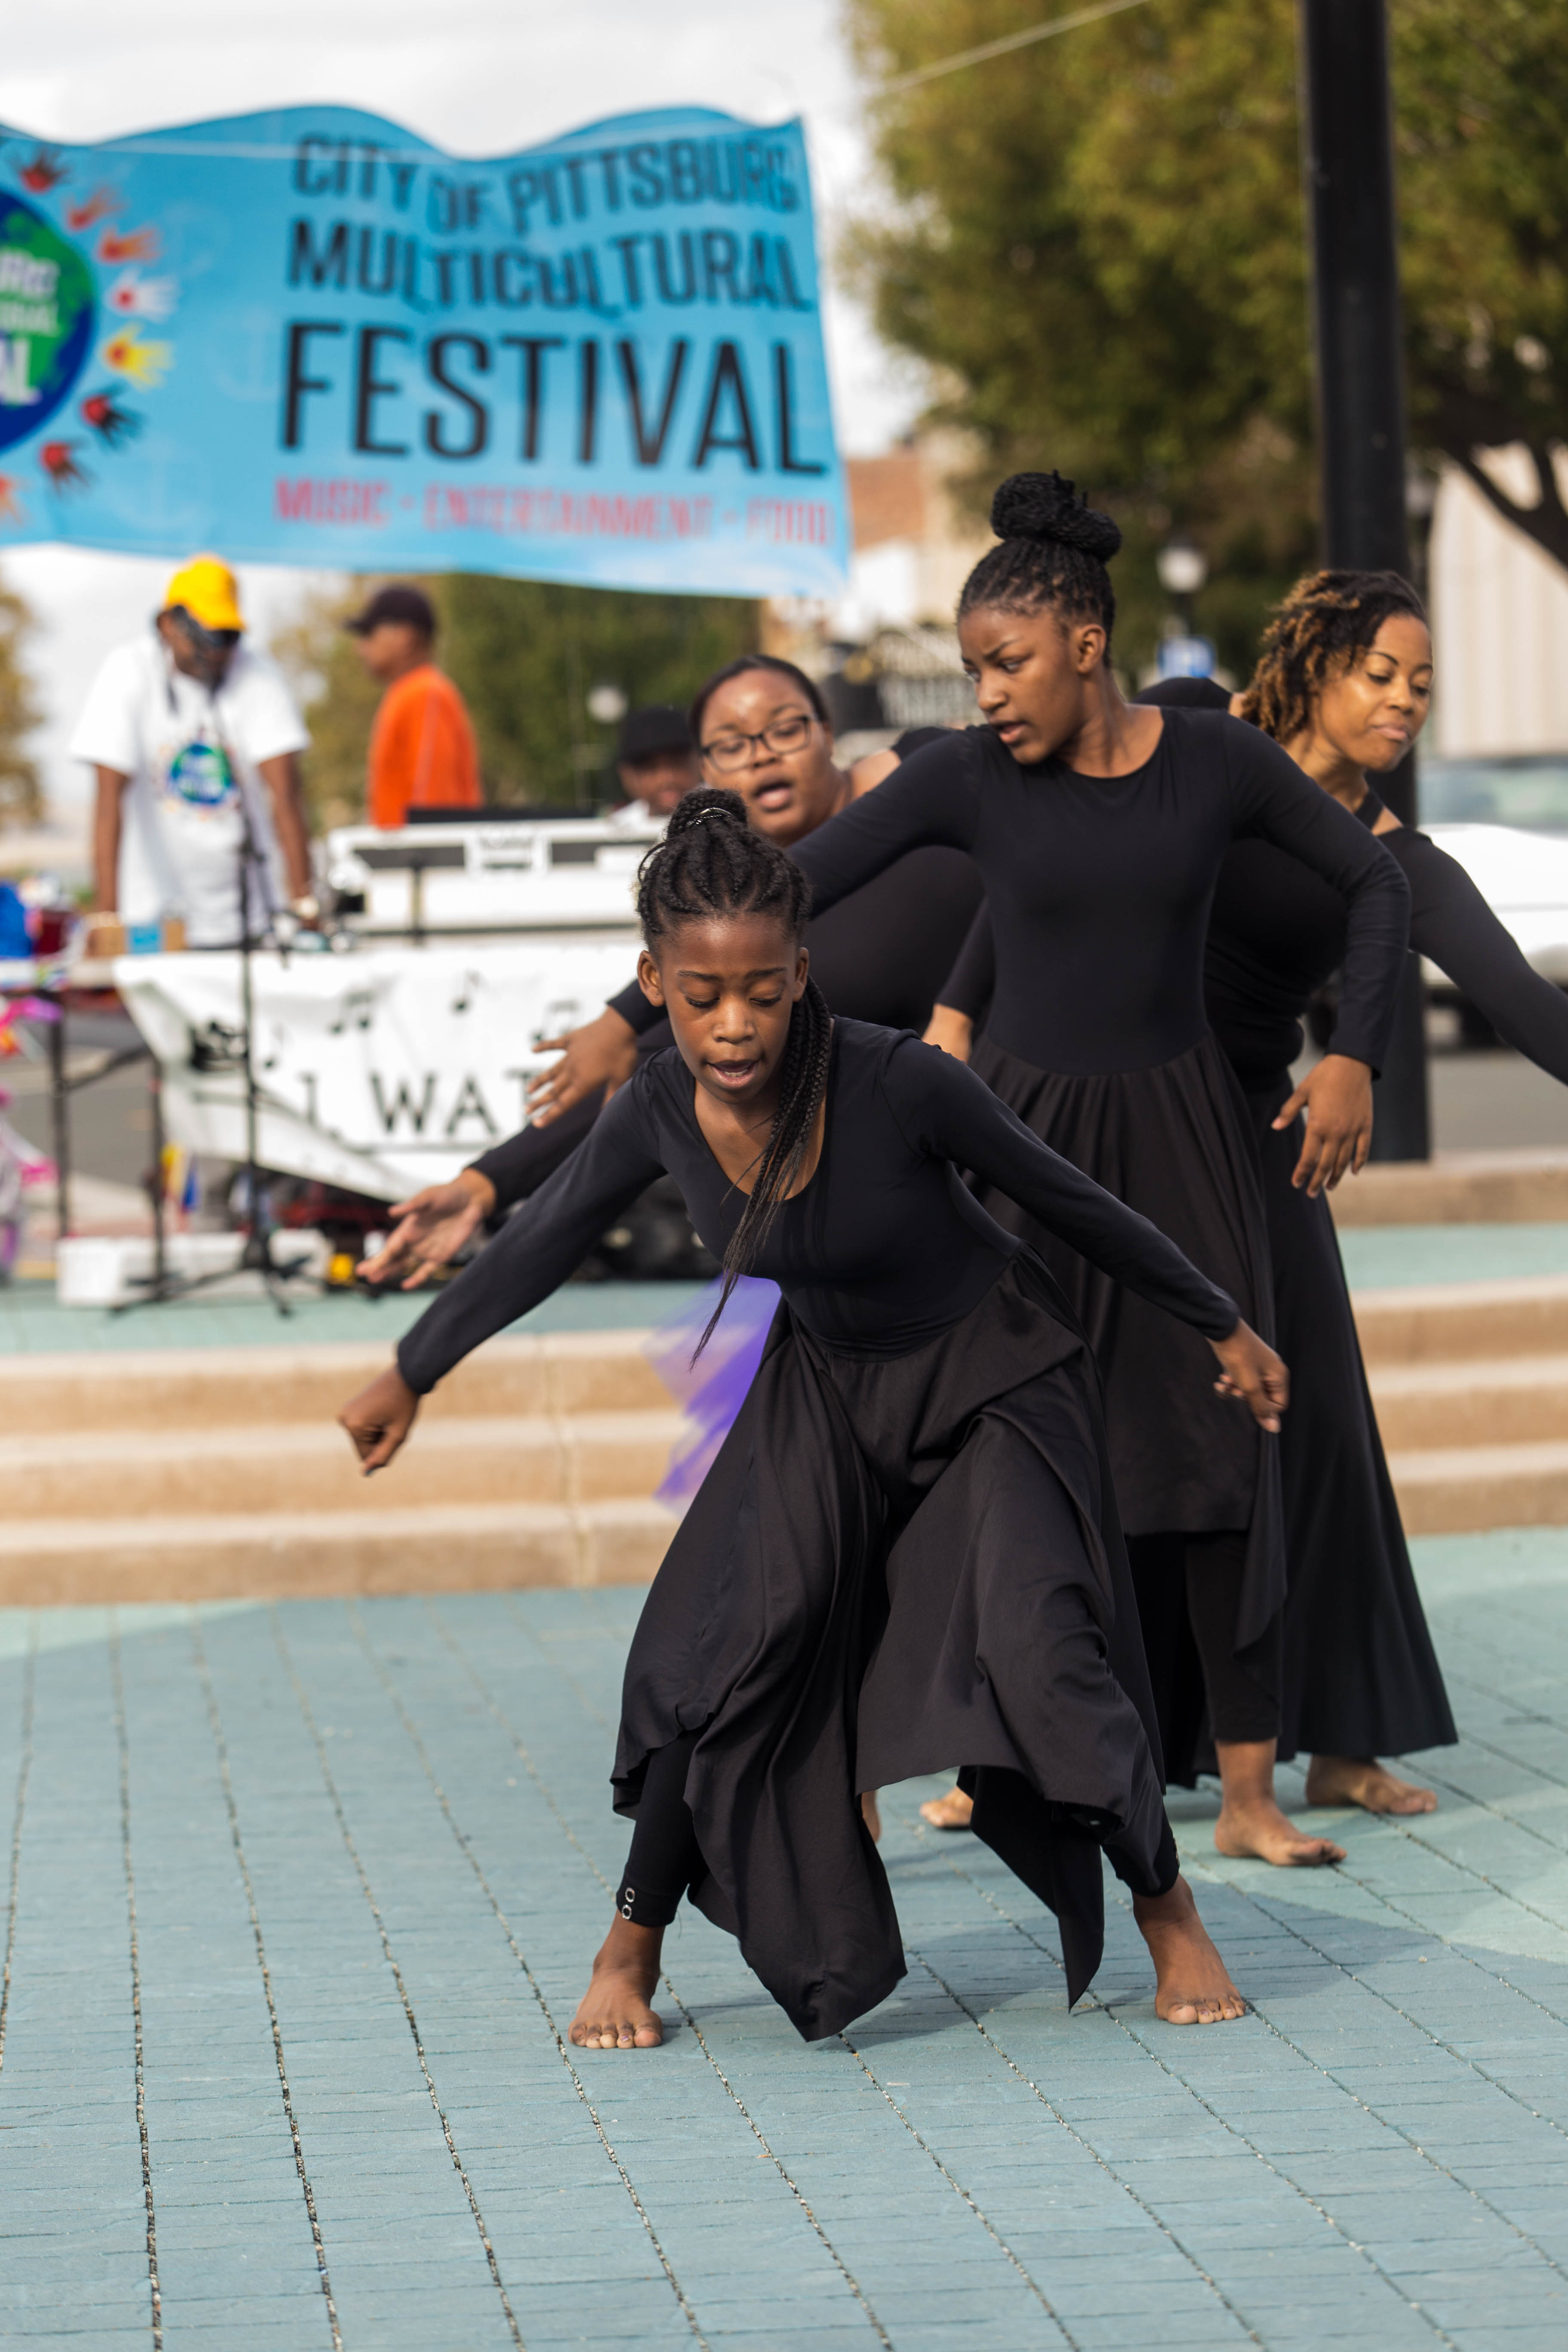 CITY_PITTSBURG_MULTICULTURAL_OCTOBER_2016 (772)